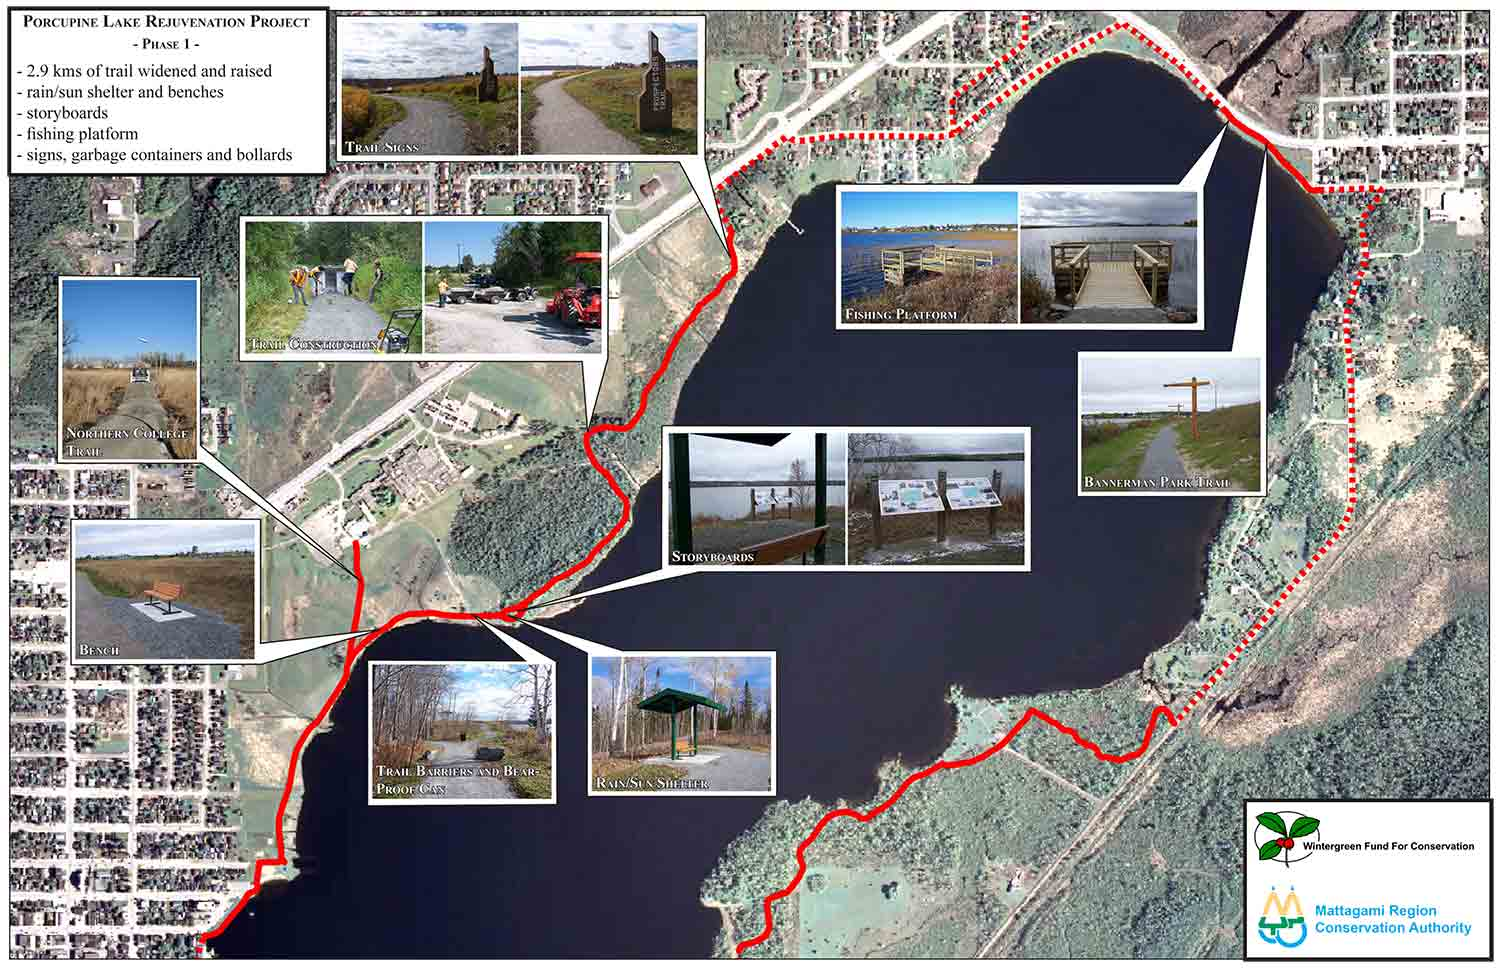 Map of the Porcupine Lake Trail showing the projects completed as part of the Porcupine Lake Rejuvenation